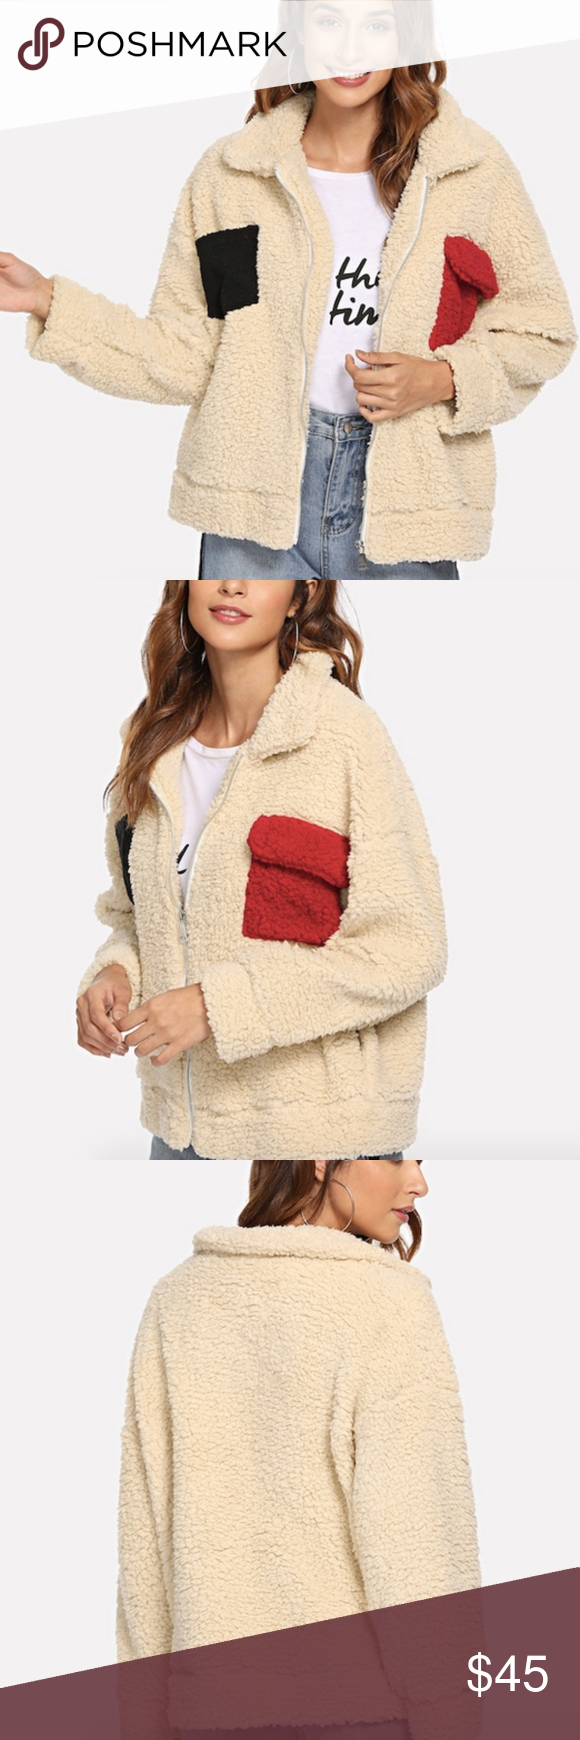 💛ONE Left!💛 Warm Teddy Pocket Plush Jacket Brand new in bag (boutique items from wholesaler are in plastic bags instead of piercing clothing with individual tags). Super plush teddy zip-up jacket with pocket-look detail. Jacket is purposefully an